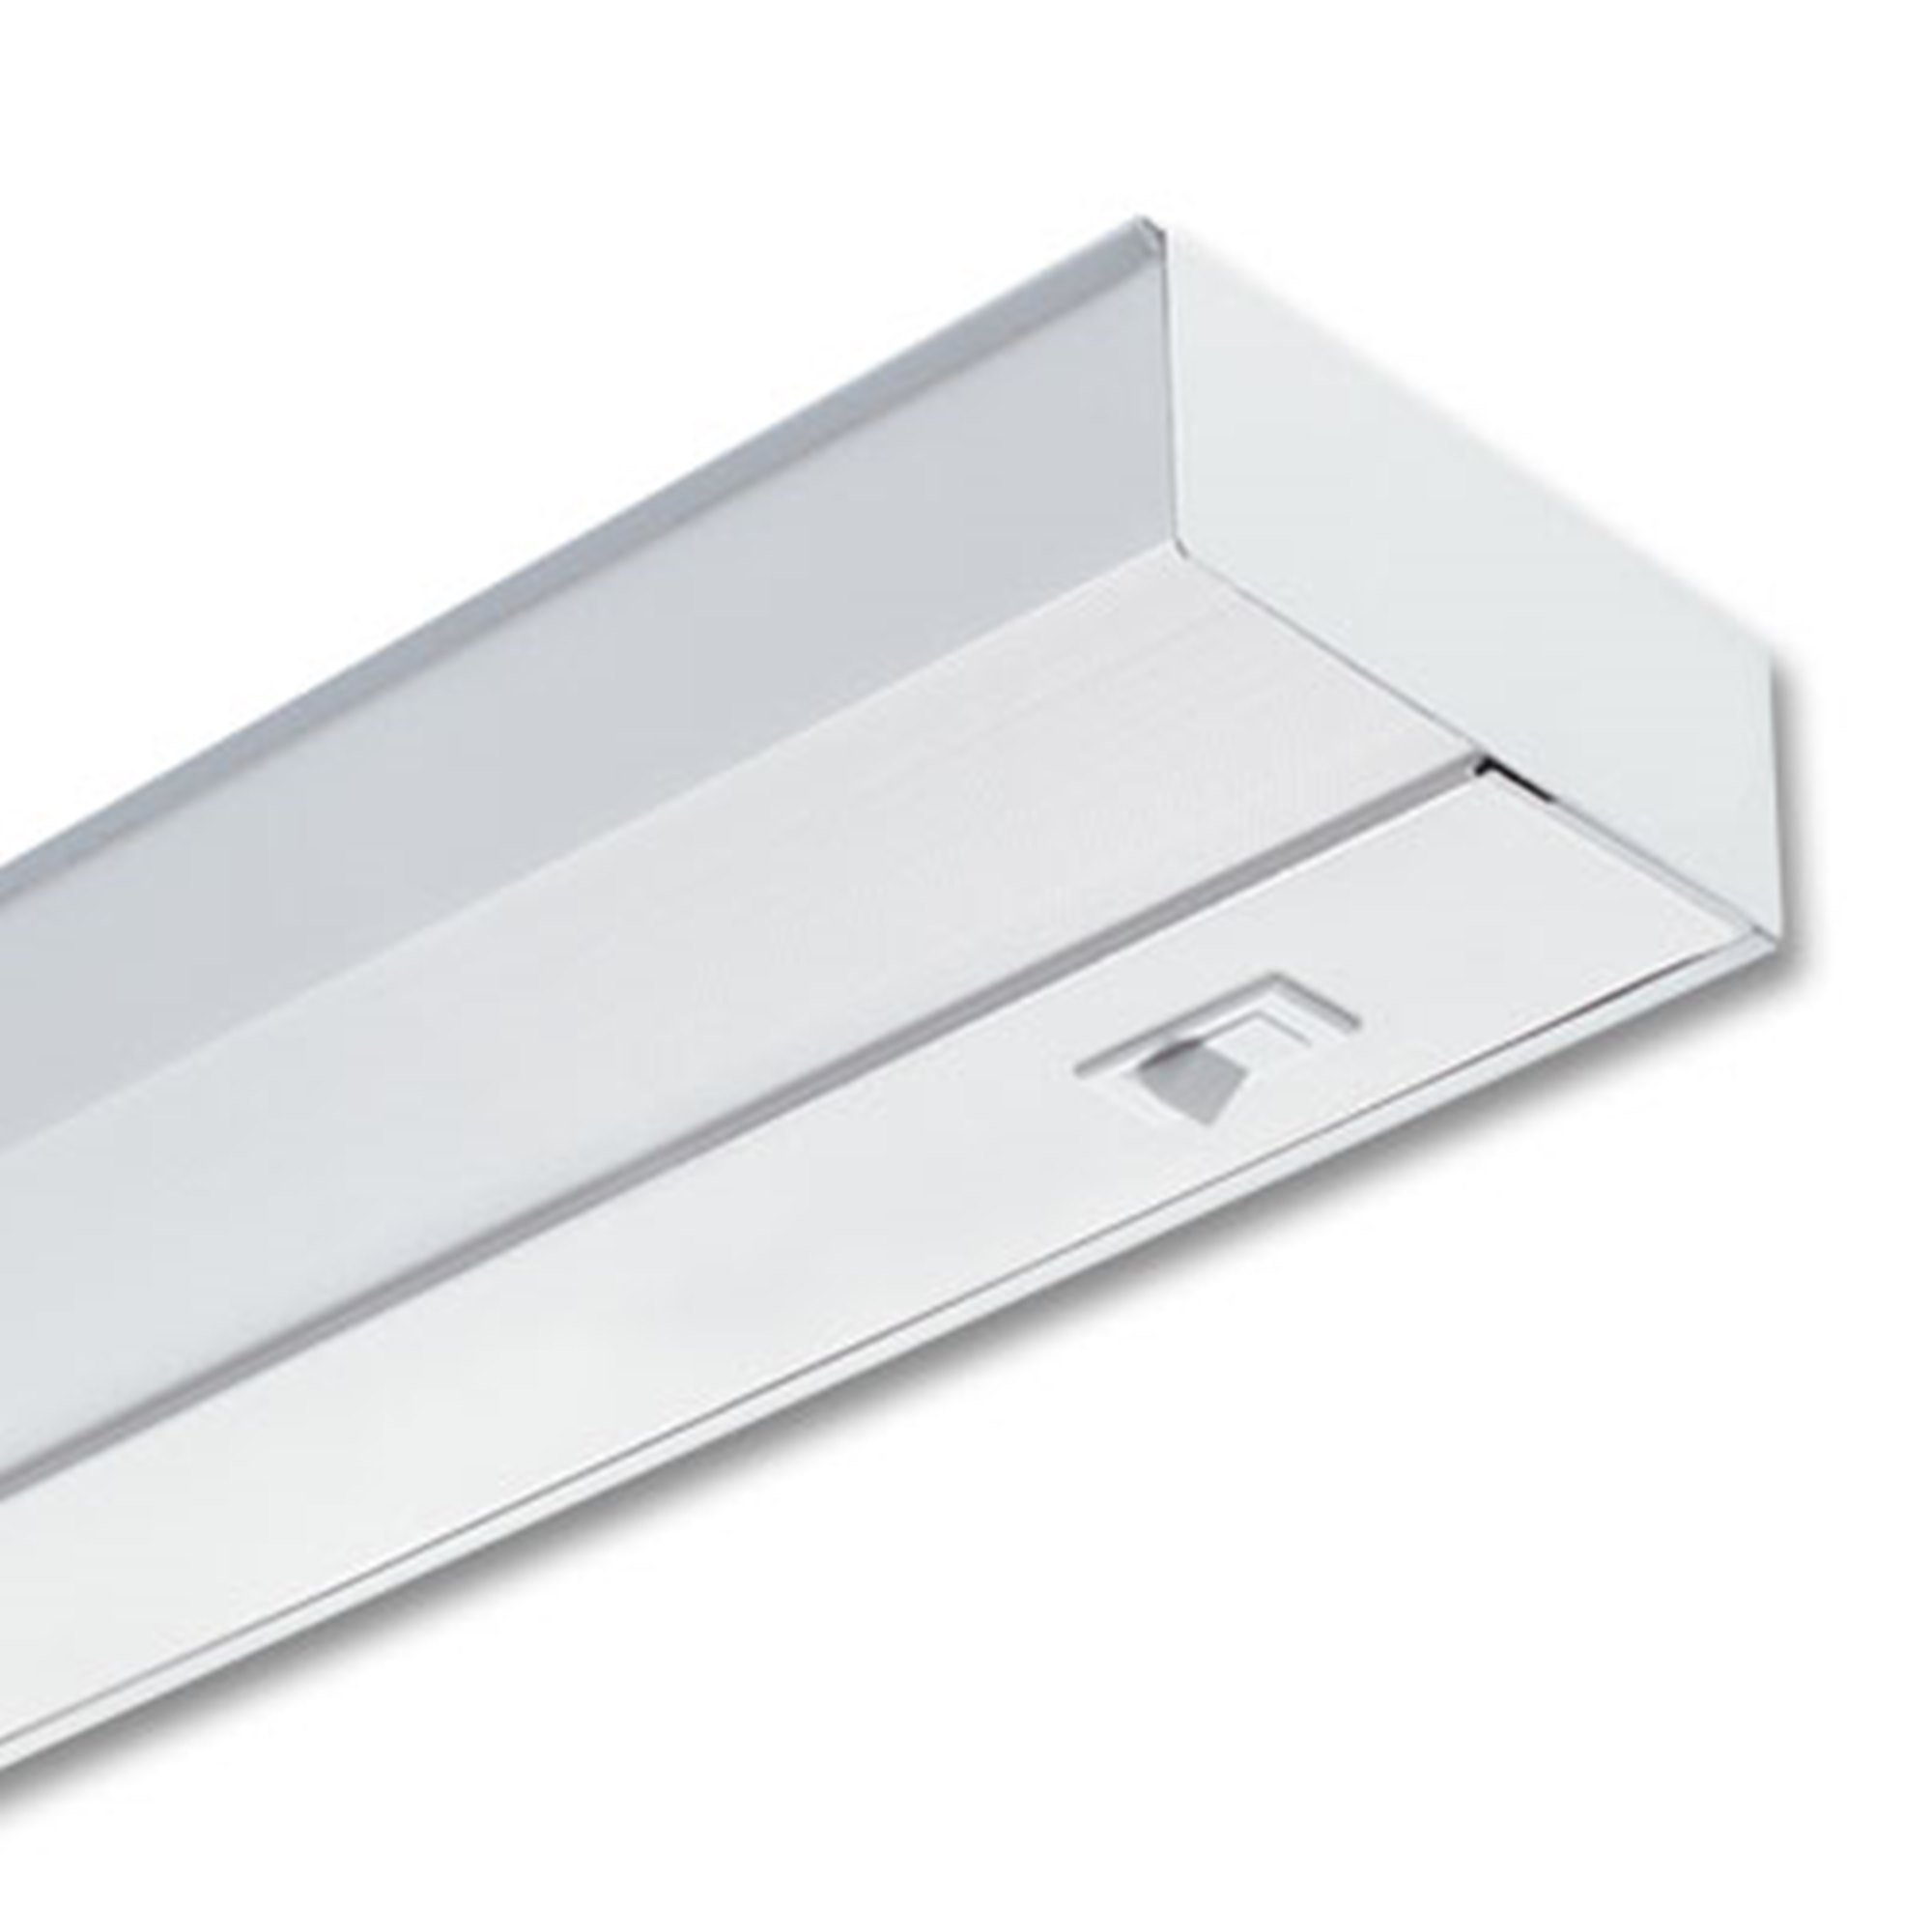 Lithonia Lighting UC 24E 120 SWR M6 2-Light 8W T5 Fluorescent Under Cabinet Light, 24-Inch